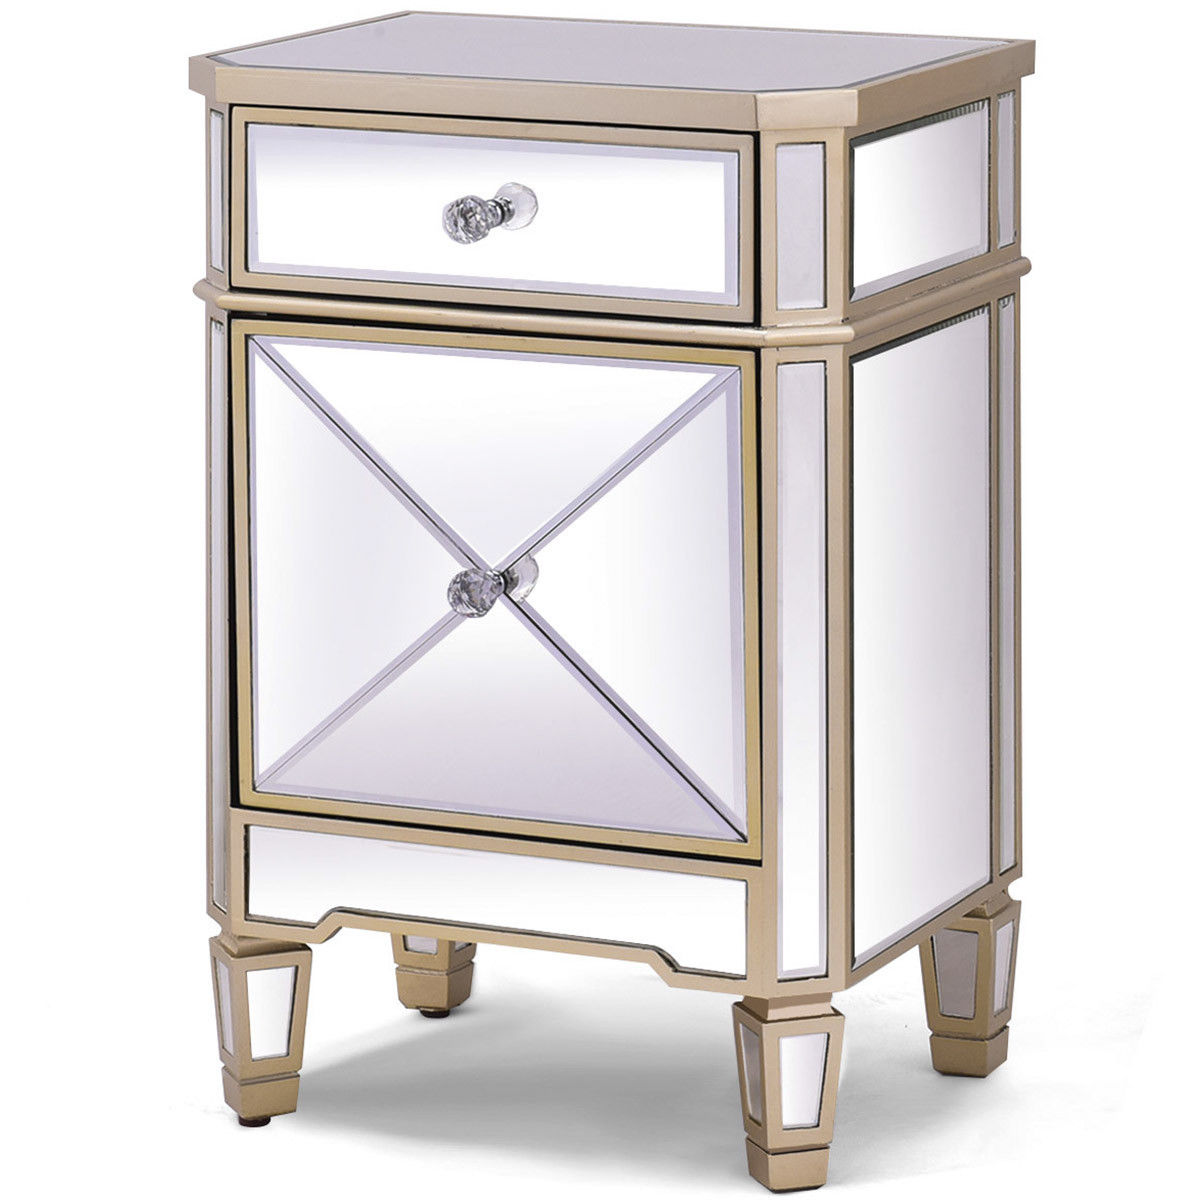 giantex modern mirrored nightstand bedroom storage accent cabinet beside table chest with drawer luxury home furniture night nightstands from pottery barn dining set console shoe